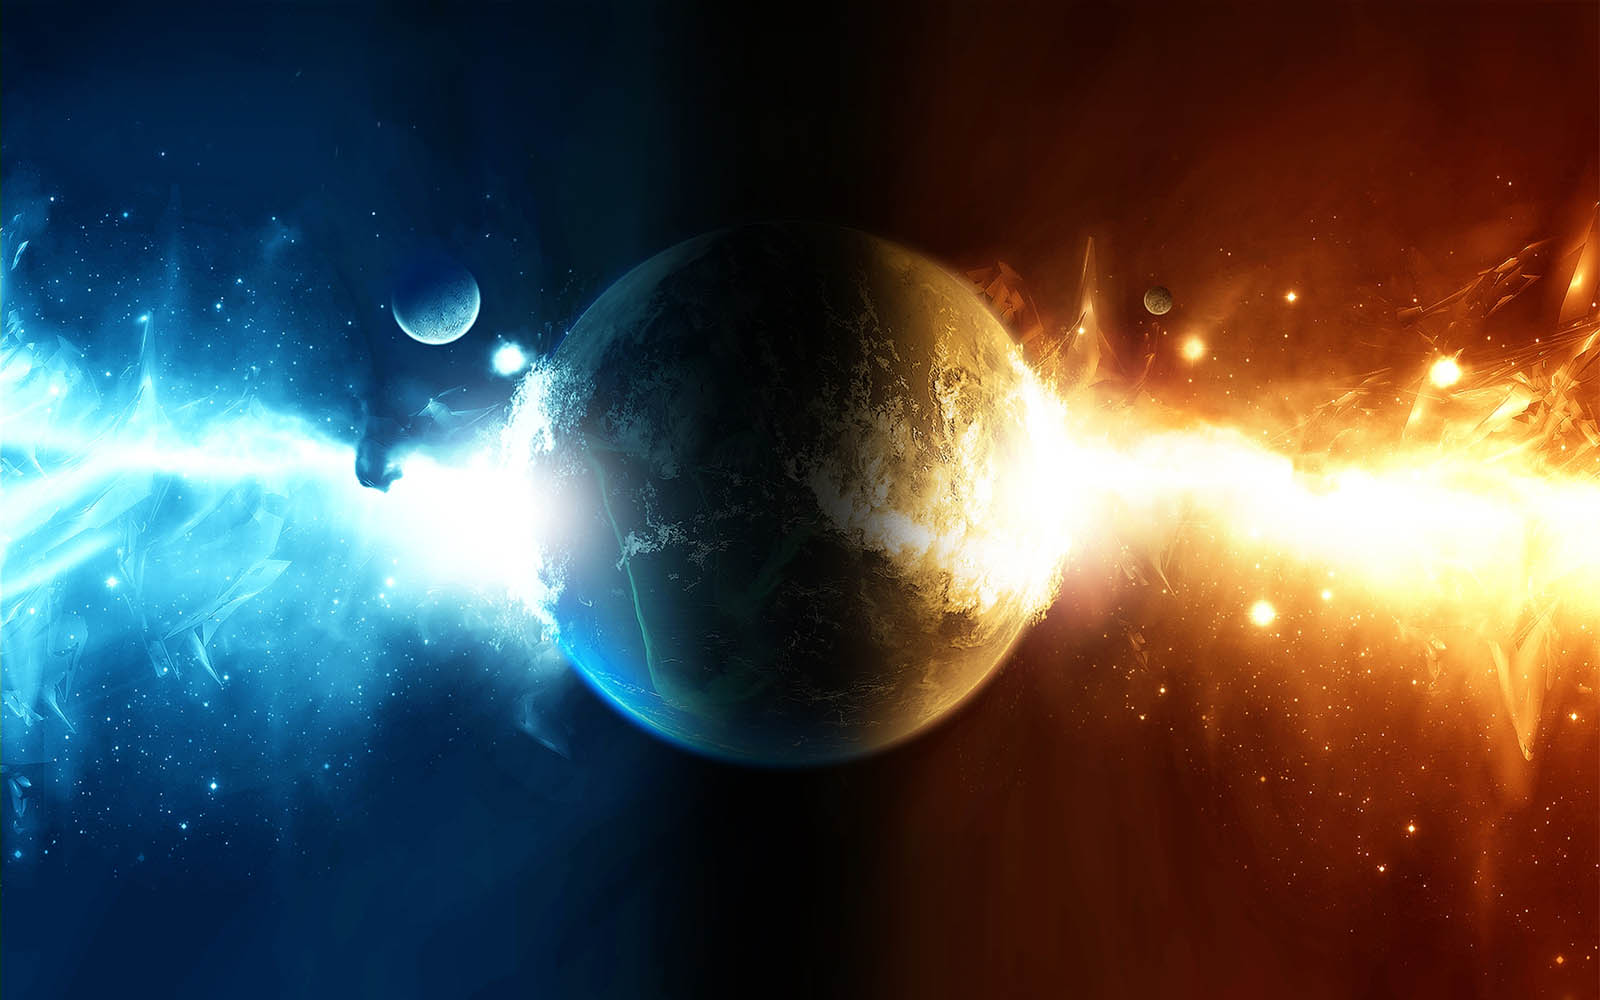 Wallpapers: Fire In Space Wallpapers